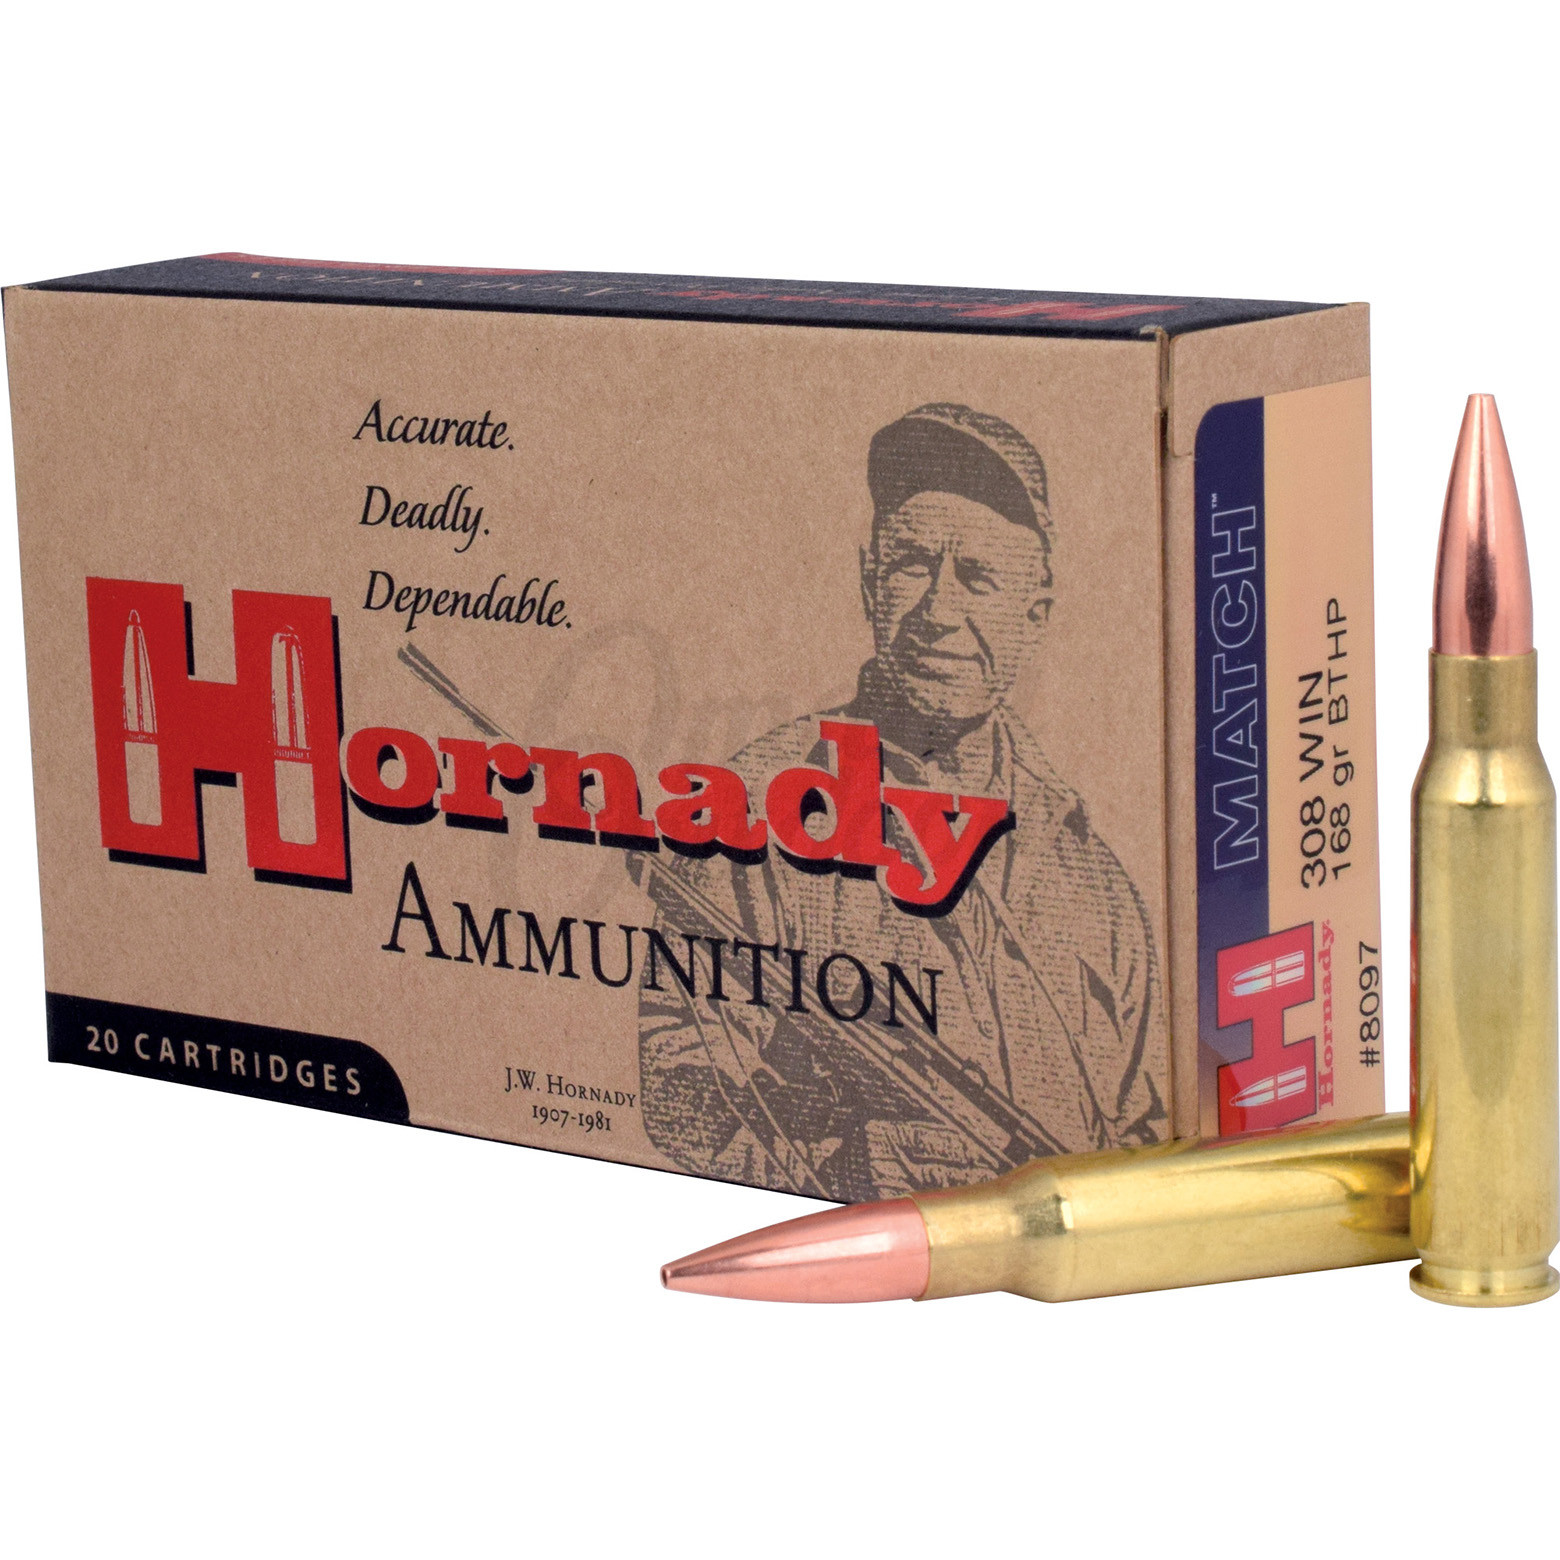 Hornady Match 308 Winchester 168 Grain Boat Tail Hollow Point 20 Round Ammo  Box 8097